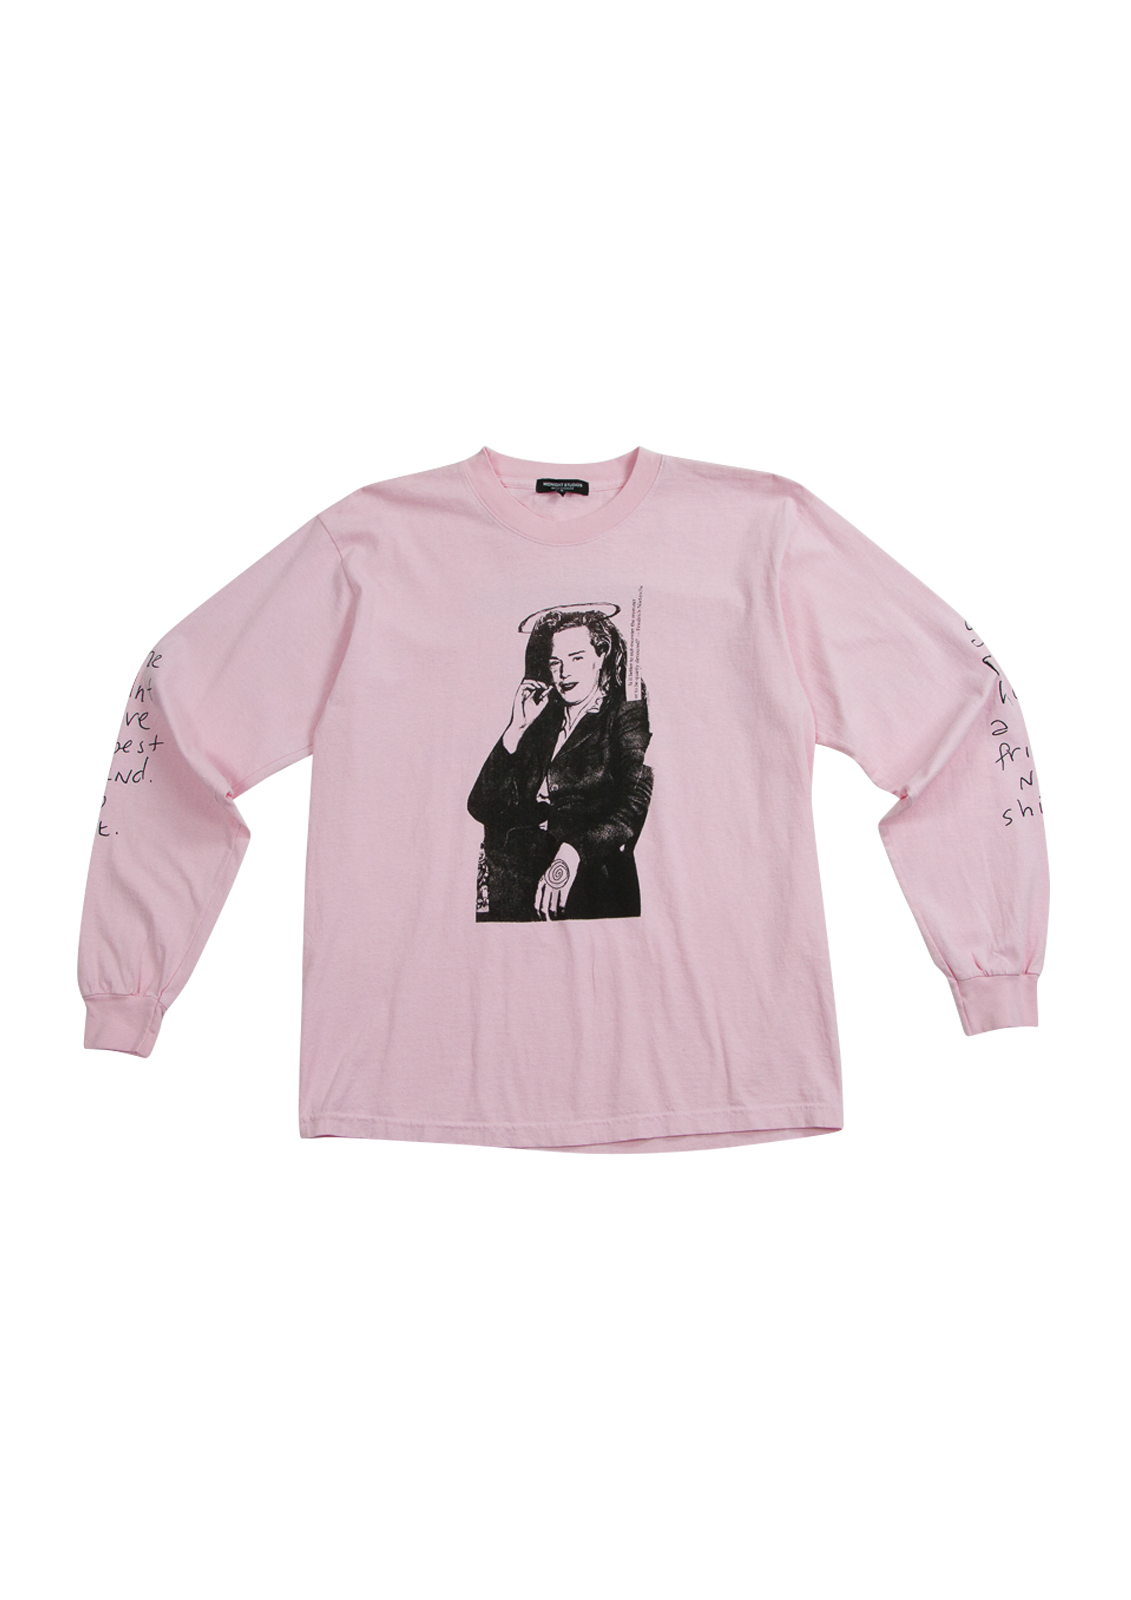 Best Friend L/S T-Shirt - Pink